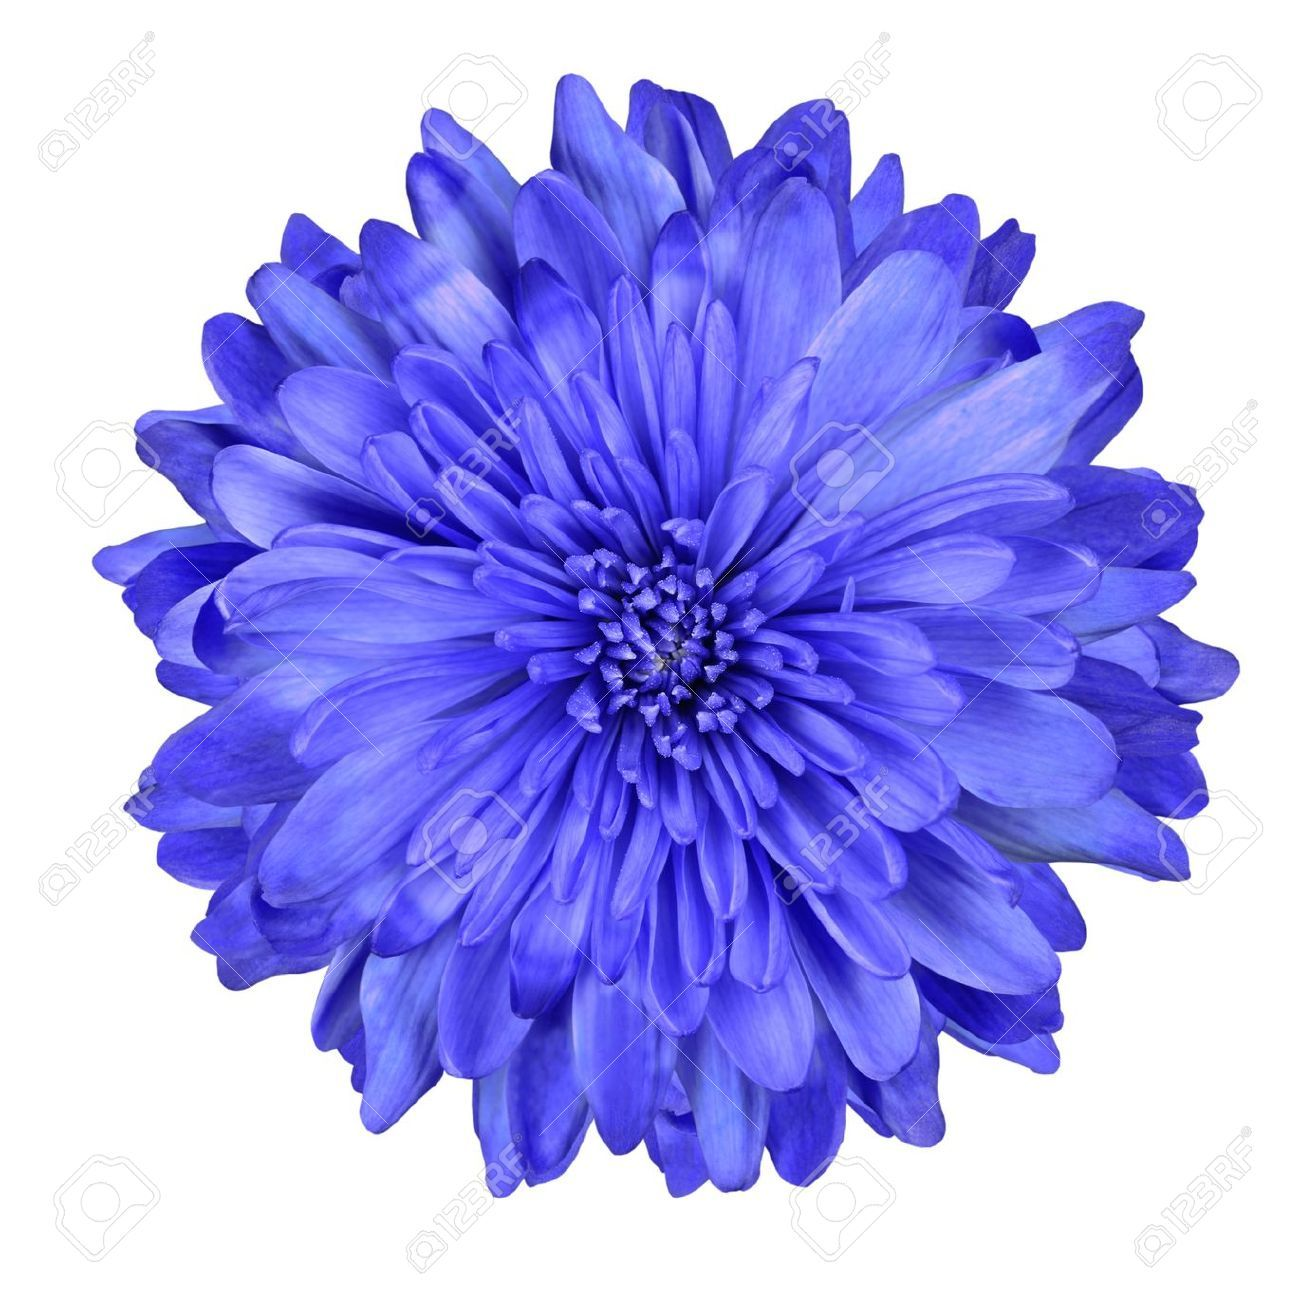 Single Deep Blue Chrysanthemum Flower Isolated Over White Background Blue Flowers Images Chrysanthemum Flower Blue Flower Tattoos